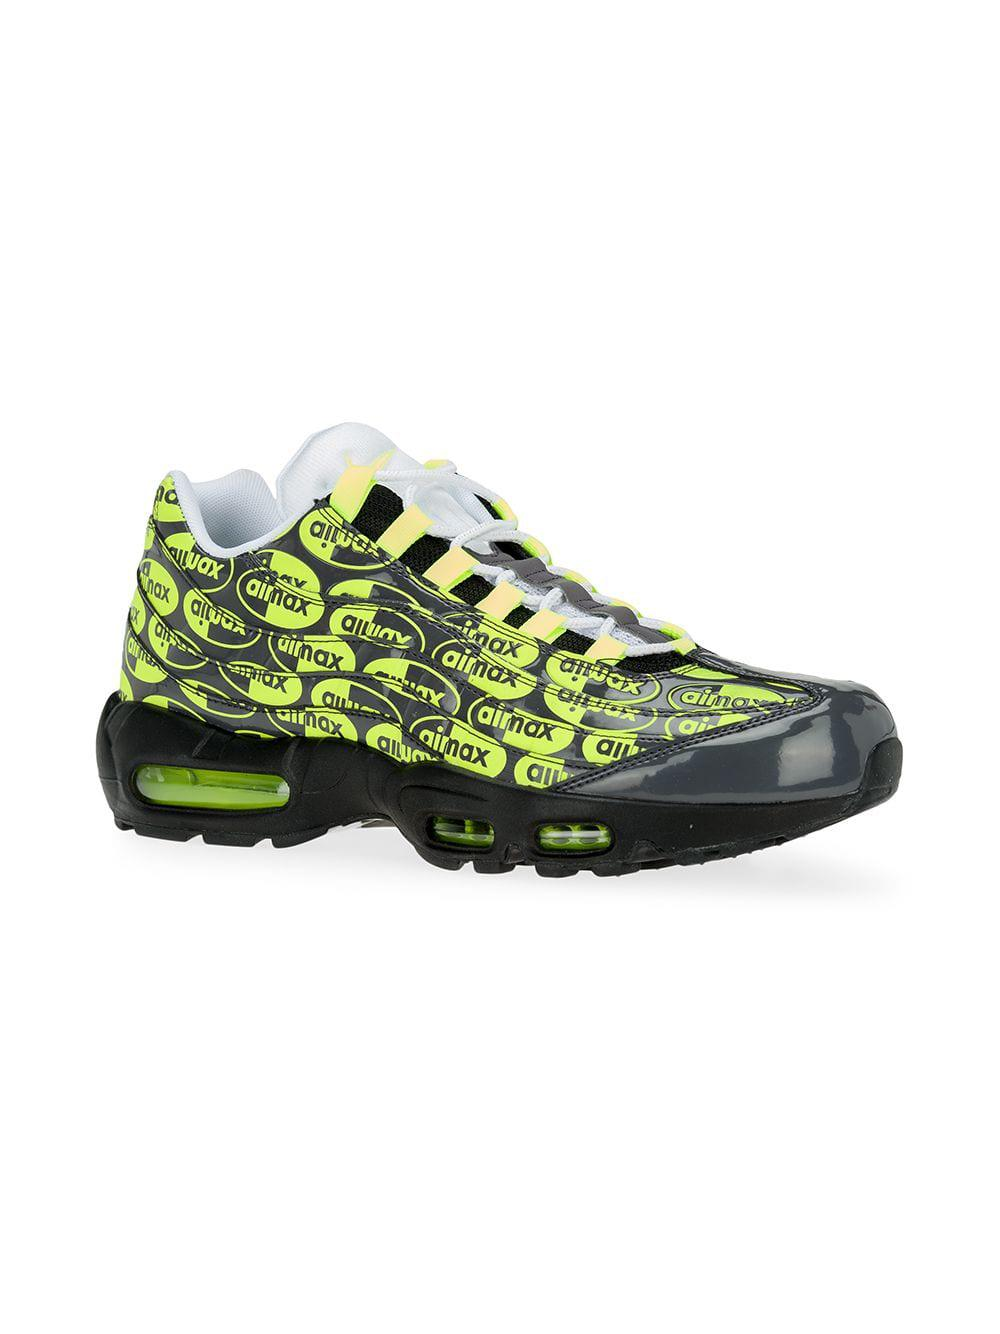 435801bdf30 Lyst - Nike Air Max 95 Premium Logo Sneakers in Black for Men